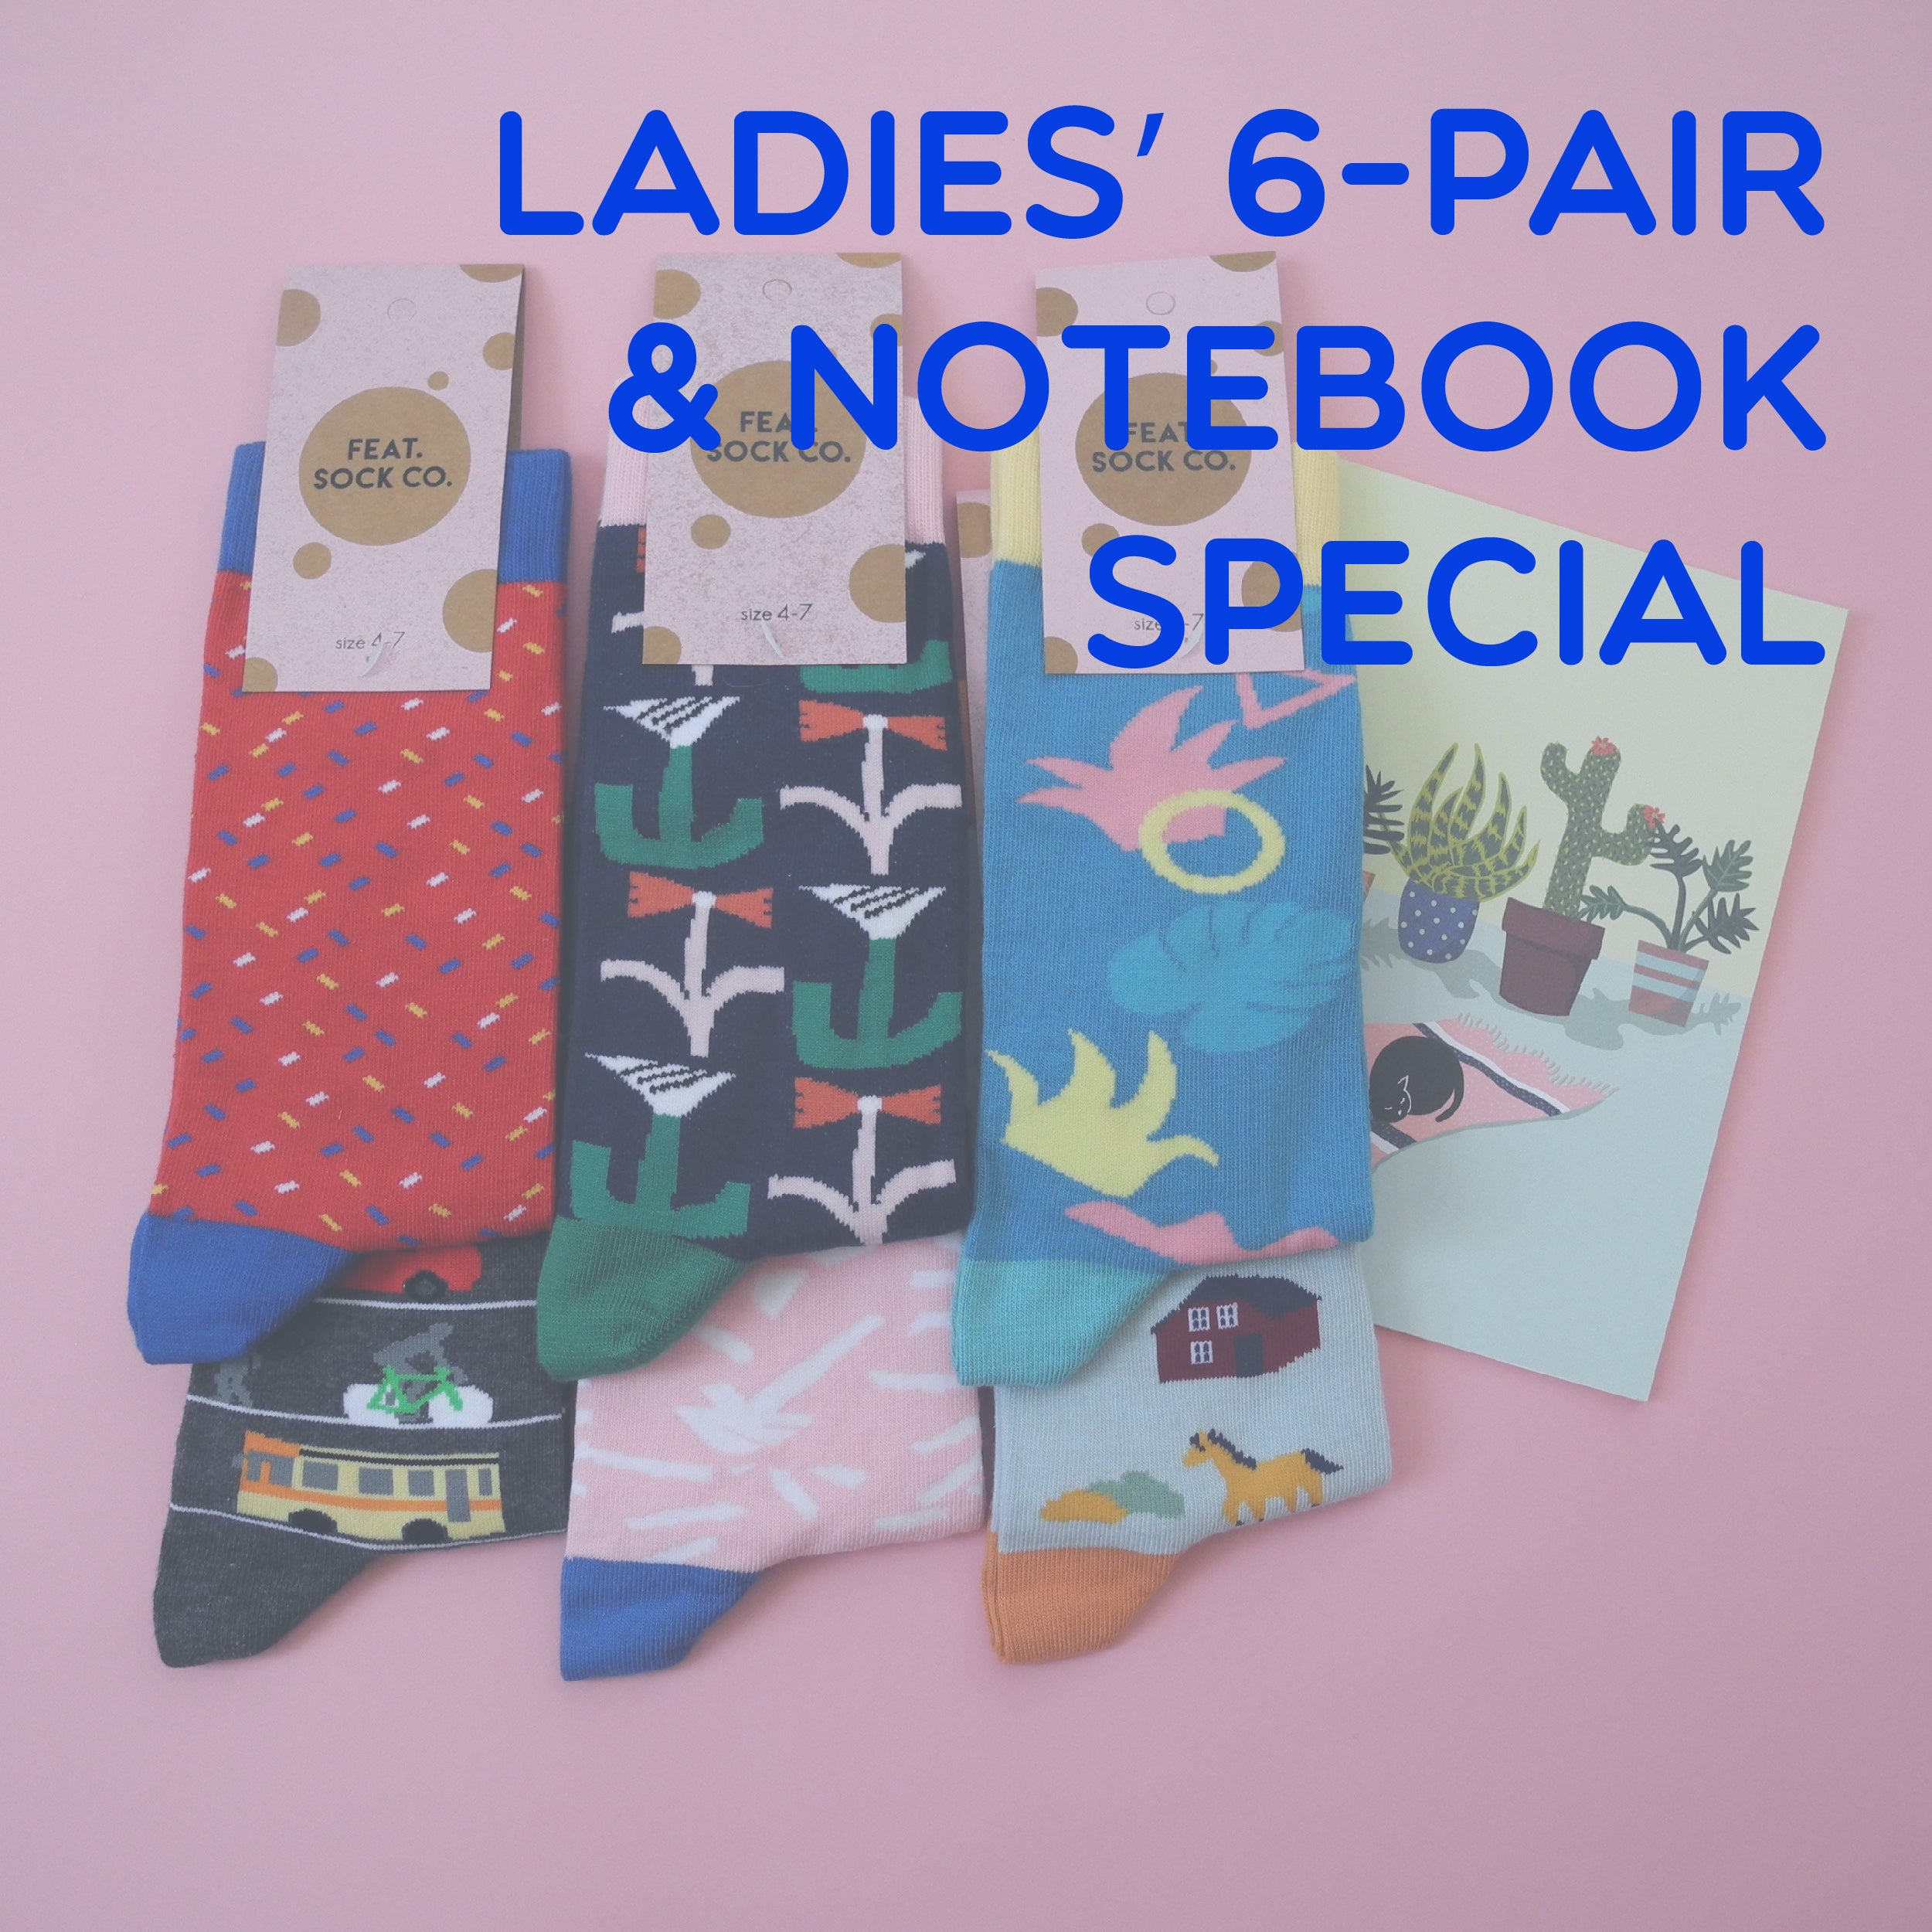 Ladies' 6-pair & notebook special